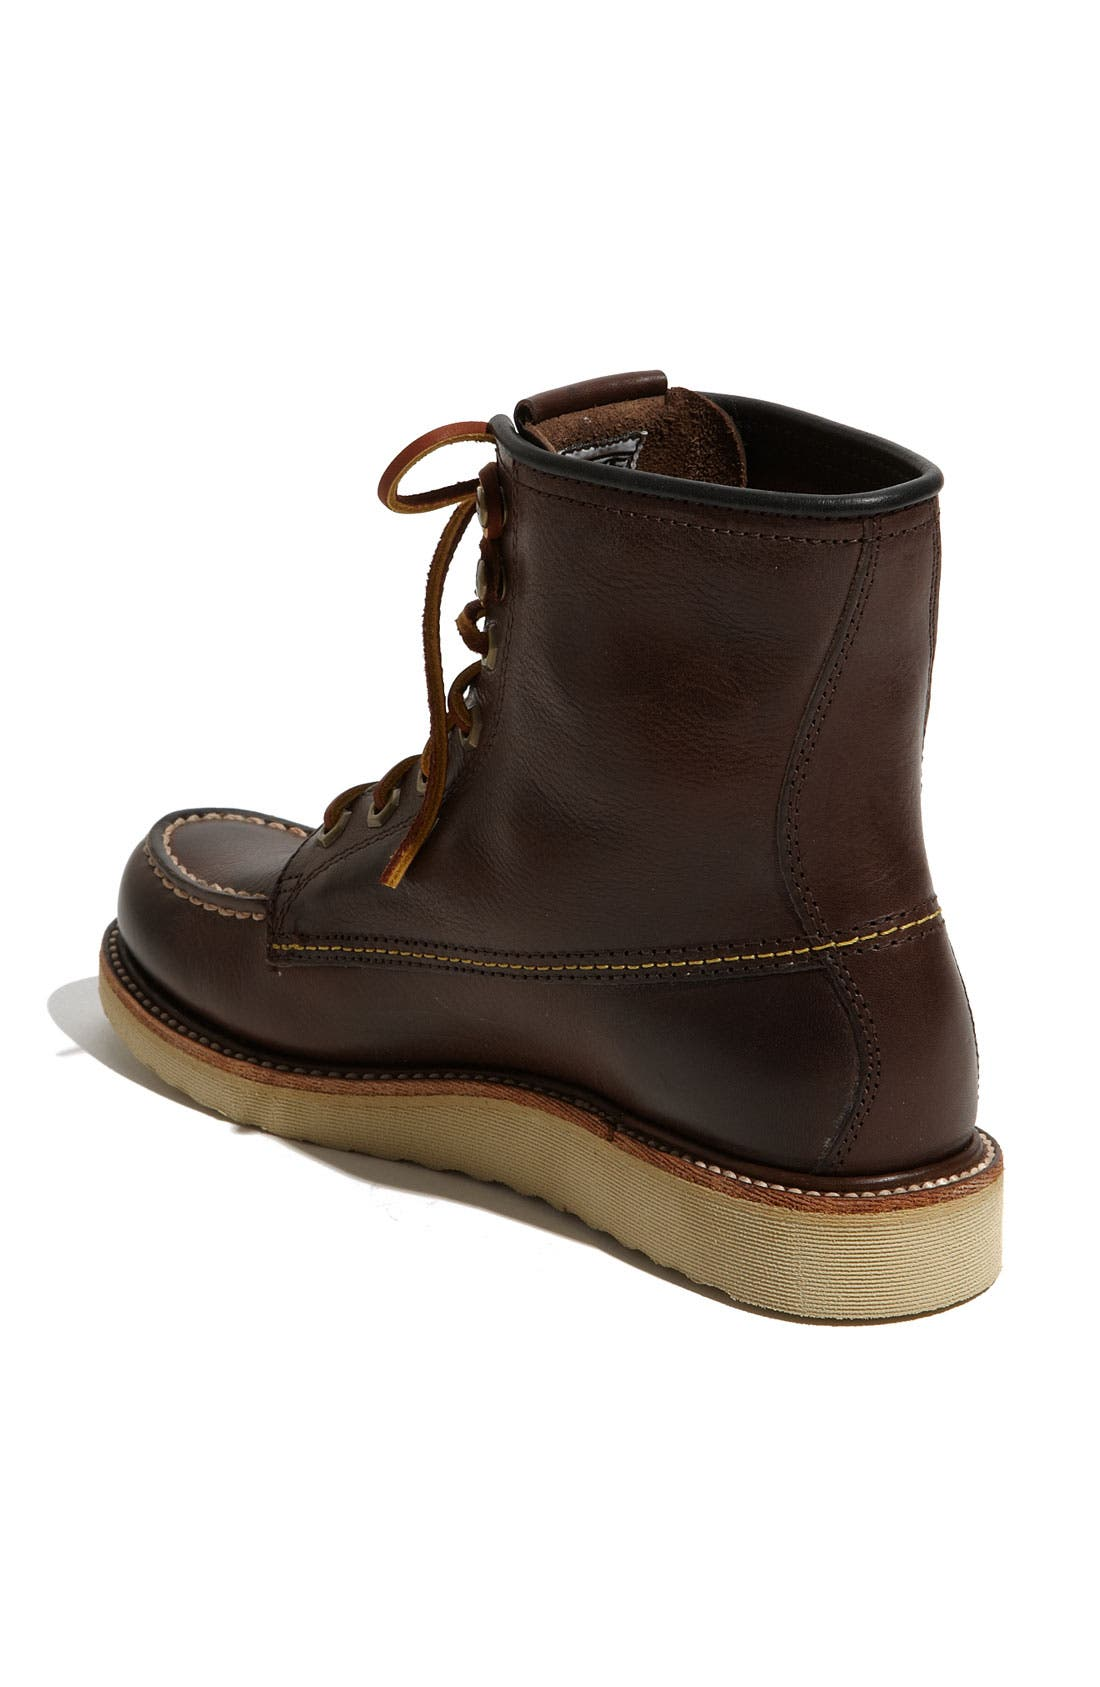 Alternate Image 2  - Frye 'Dakota' Wedge Boot